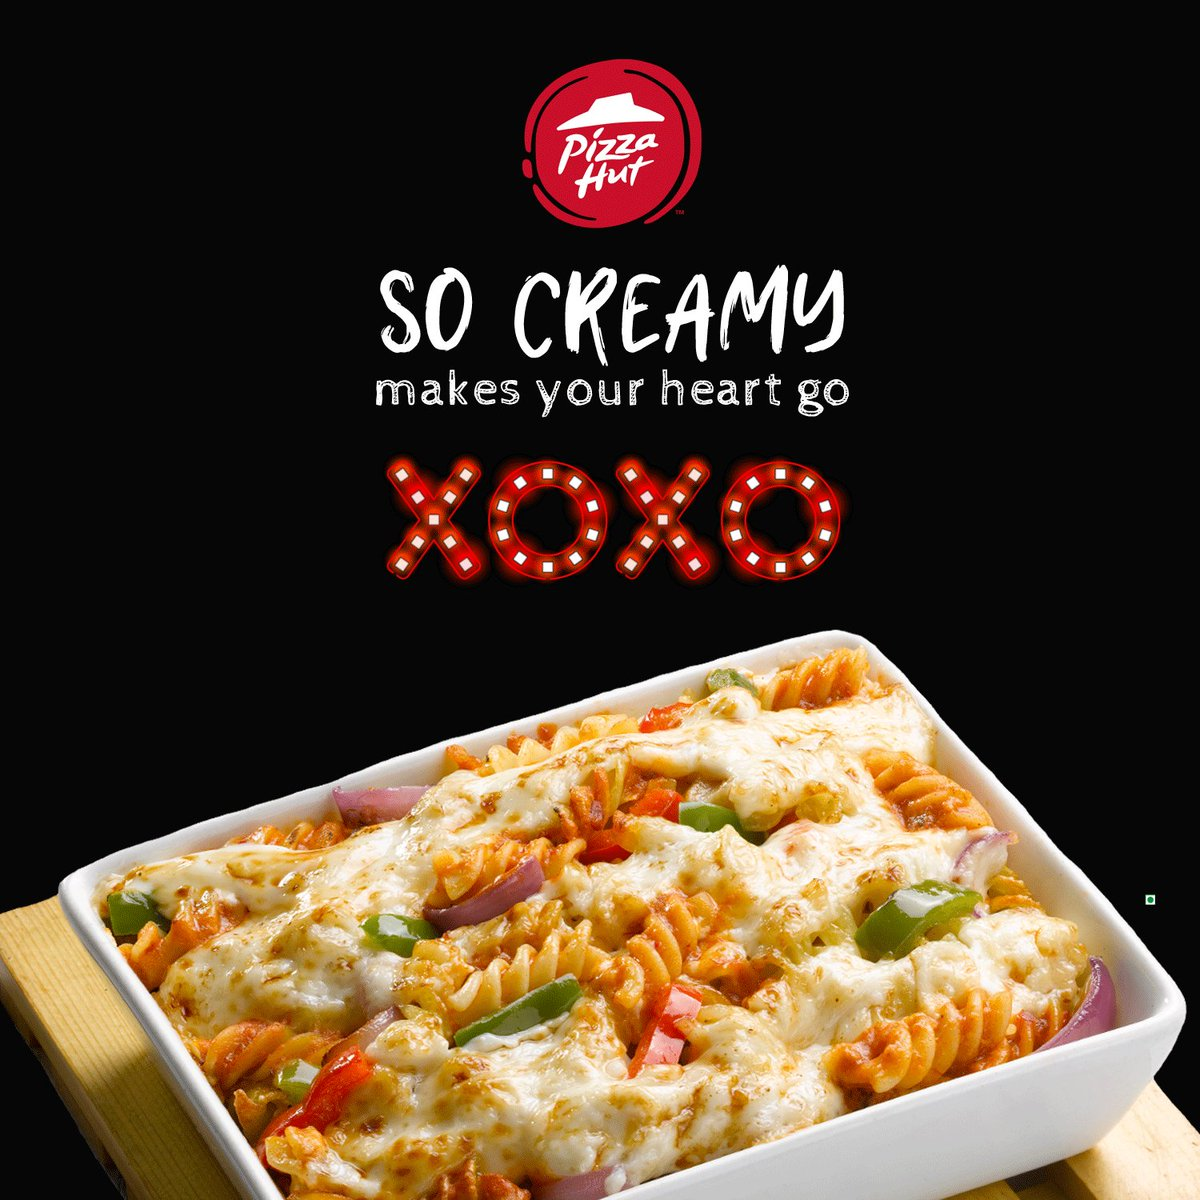 You will be remembering this meal for a long time. Order online and ask for our creamilicious Spanish Tomato Pasta